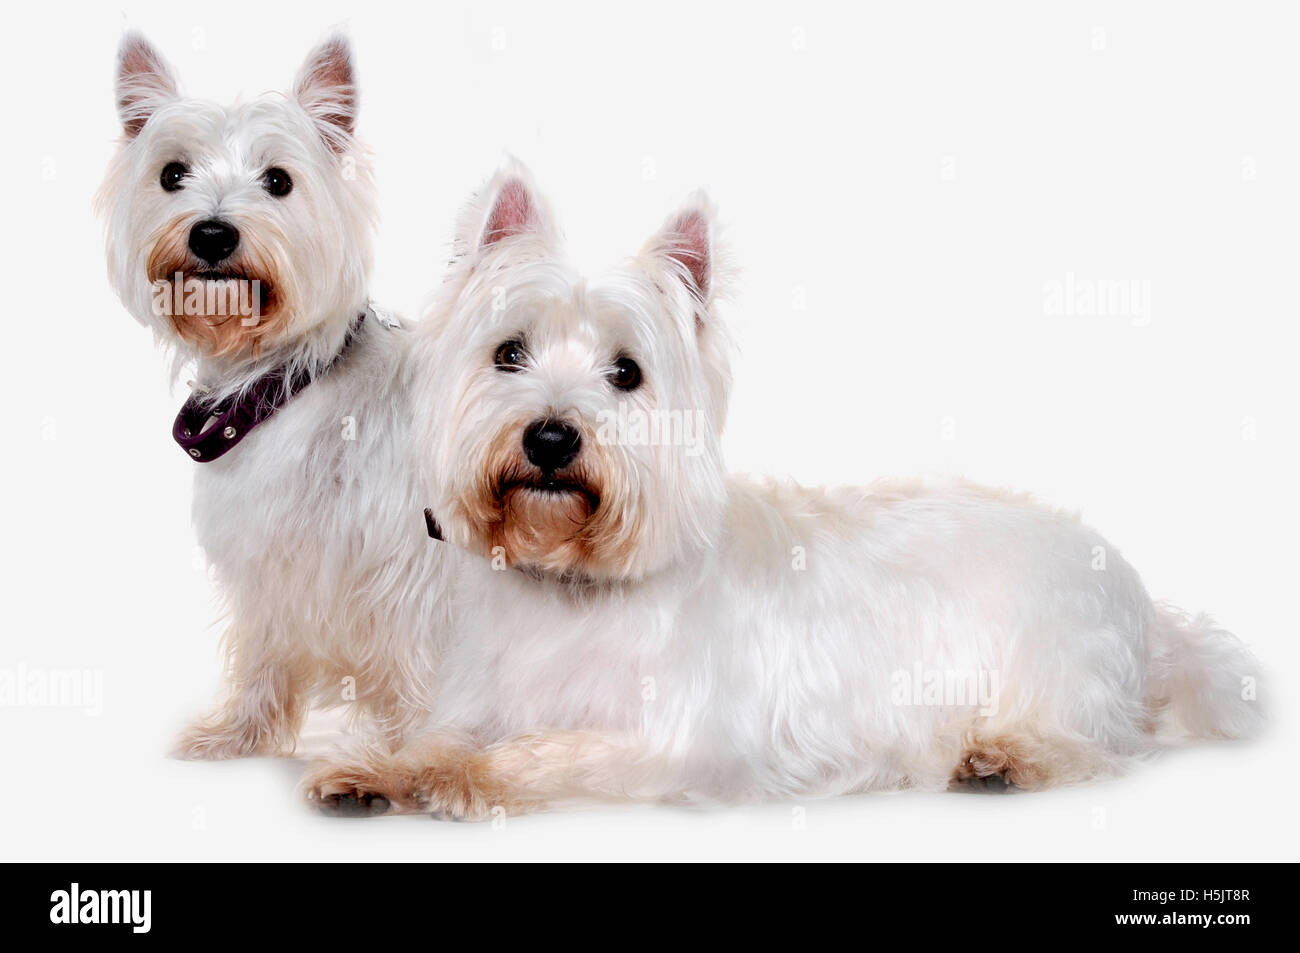 Two west highland terriers photographed in a photographic studio in the UK. - Stock Image